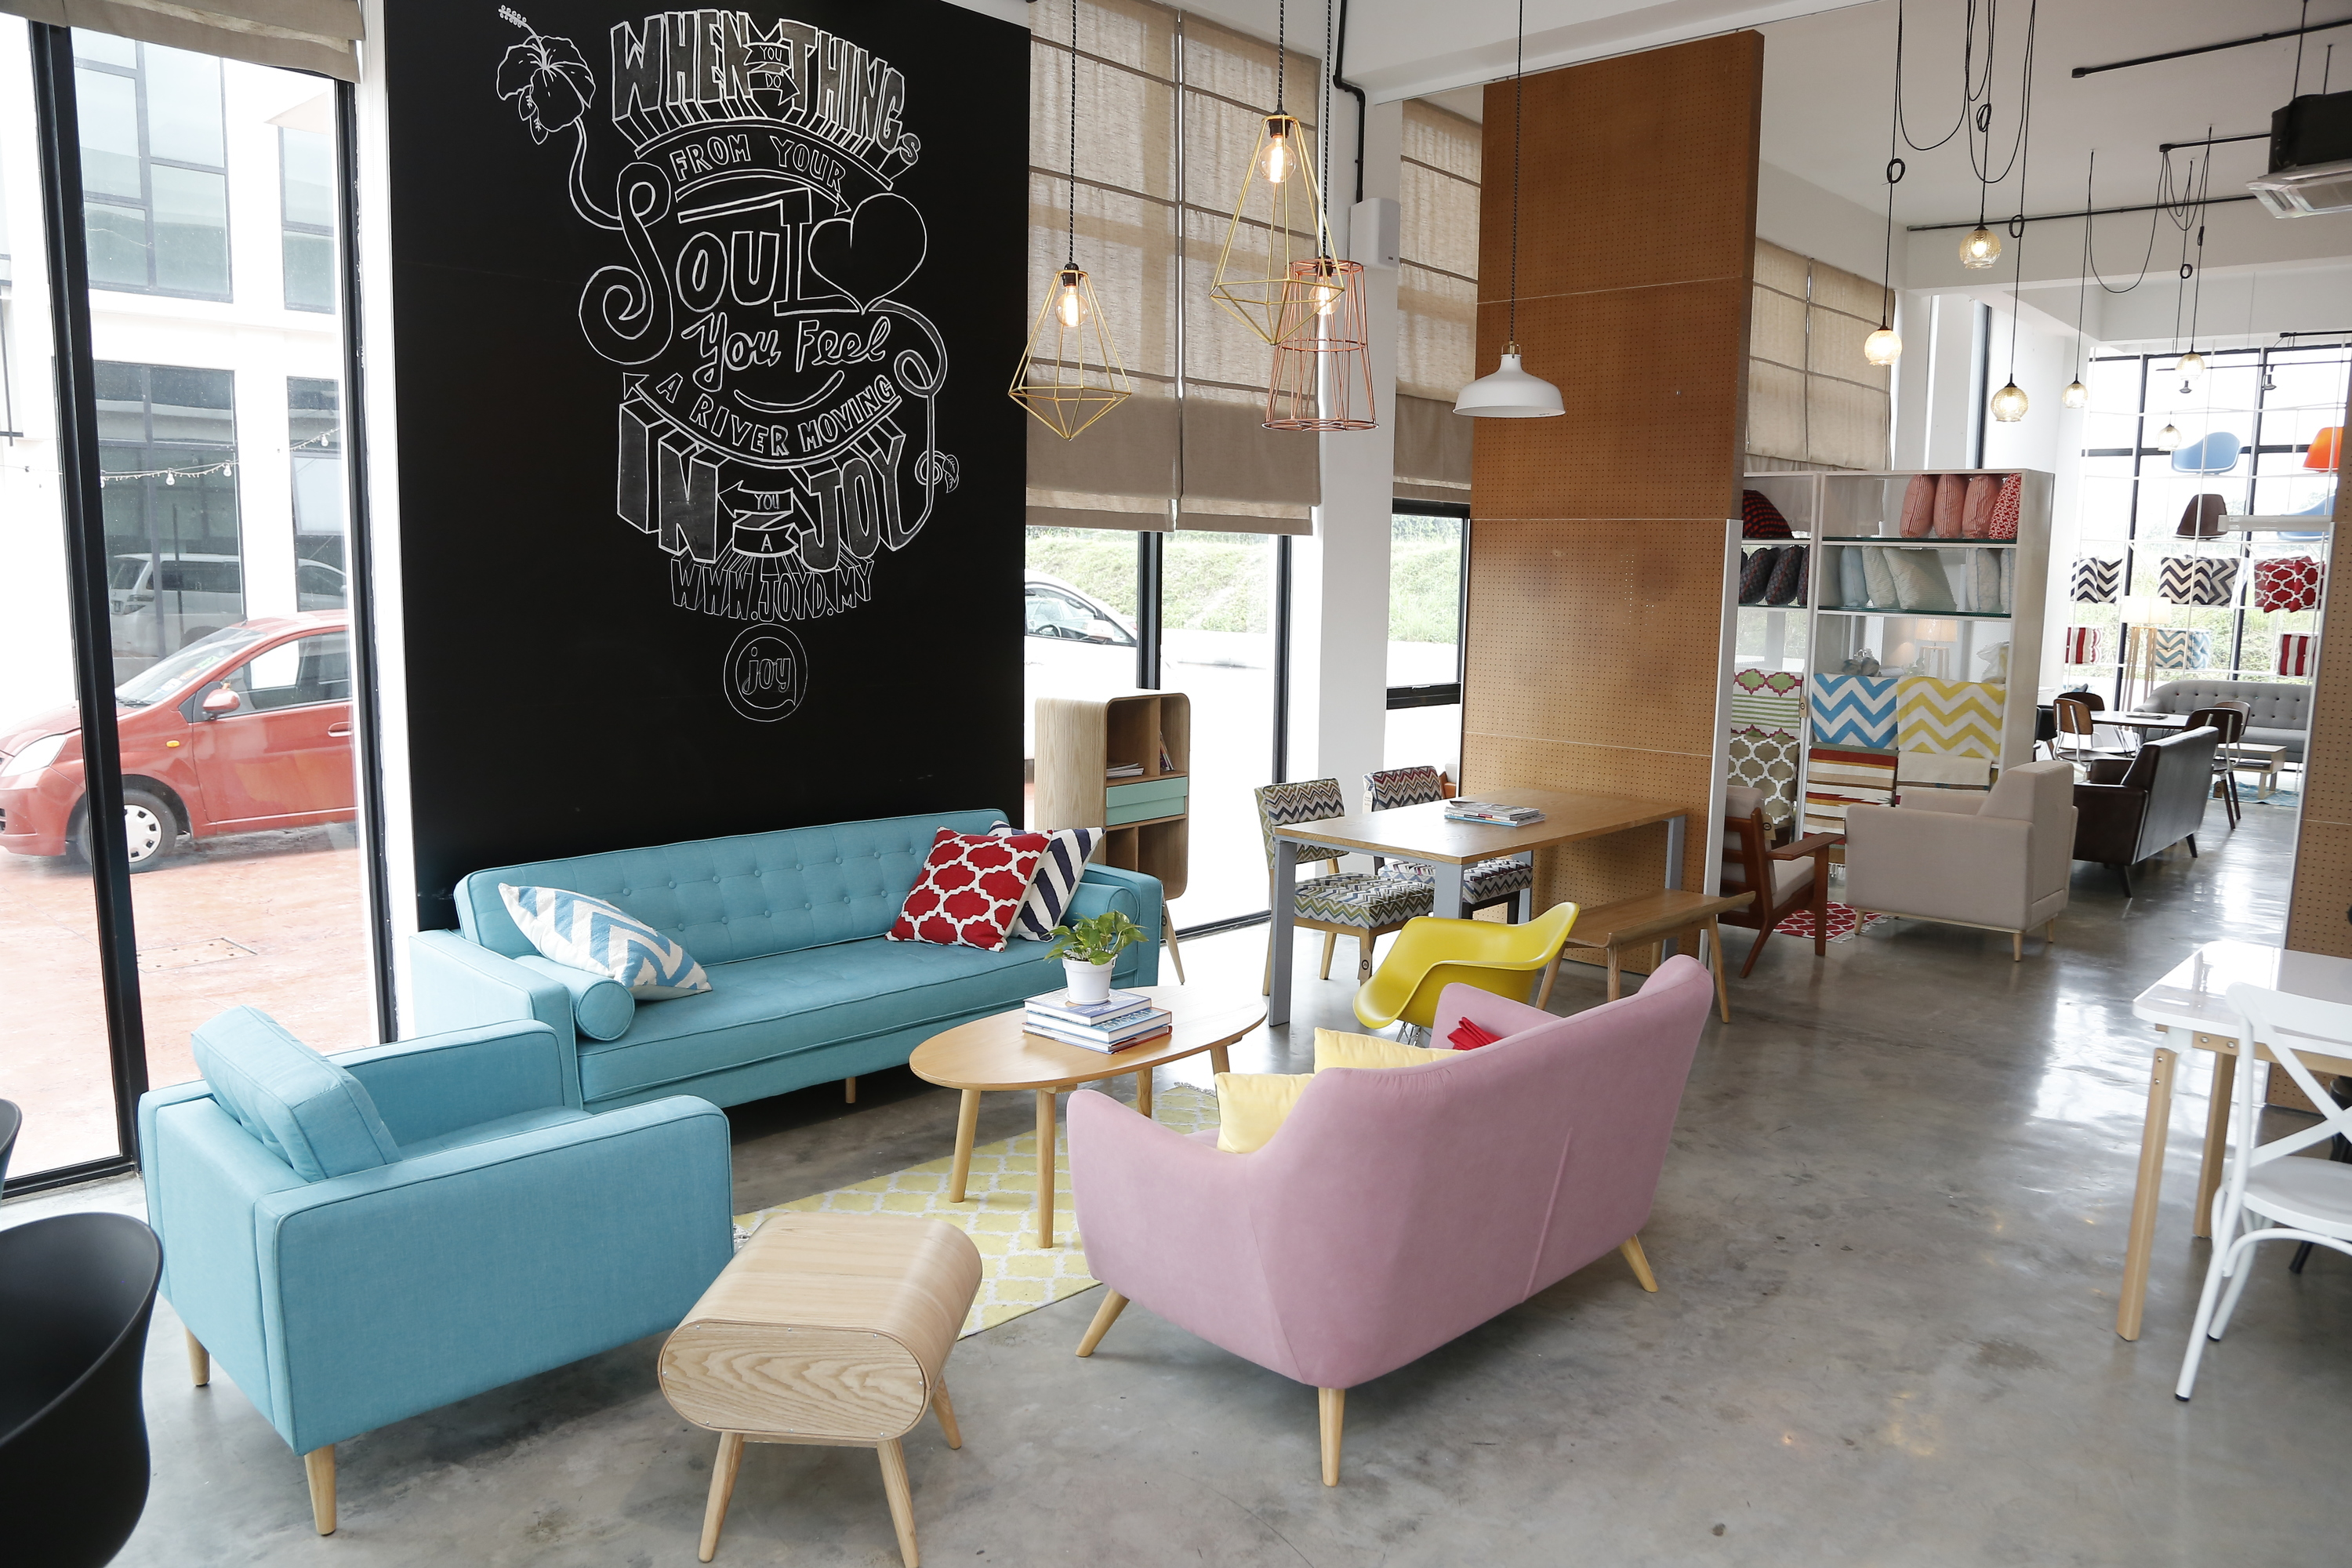 The best furniture and home decor stores in kl - Home furnishing stores ...